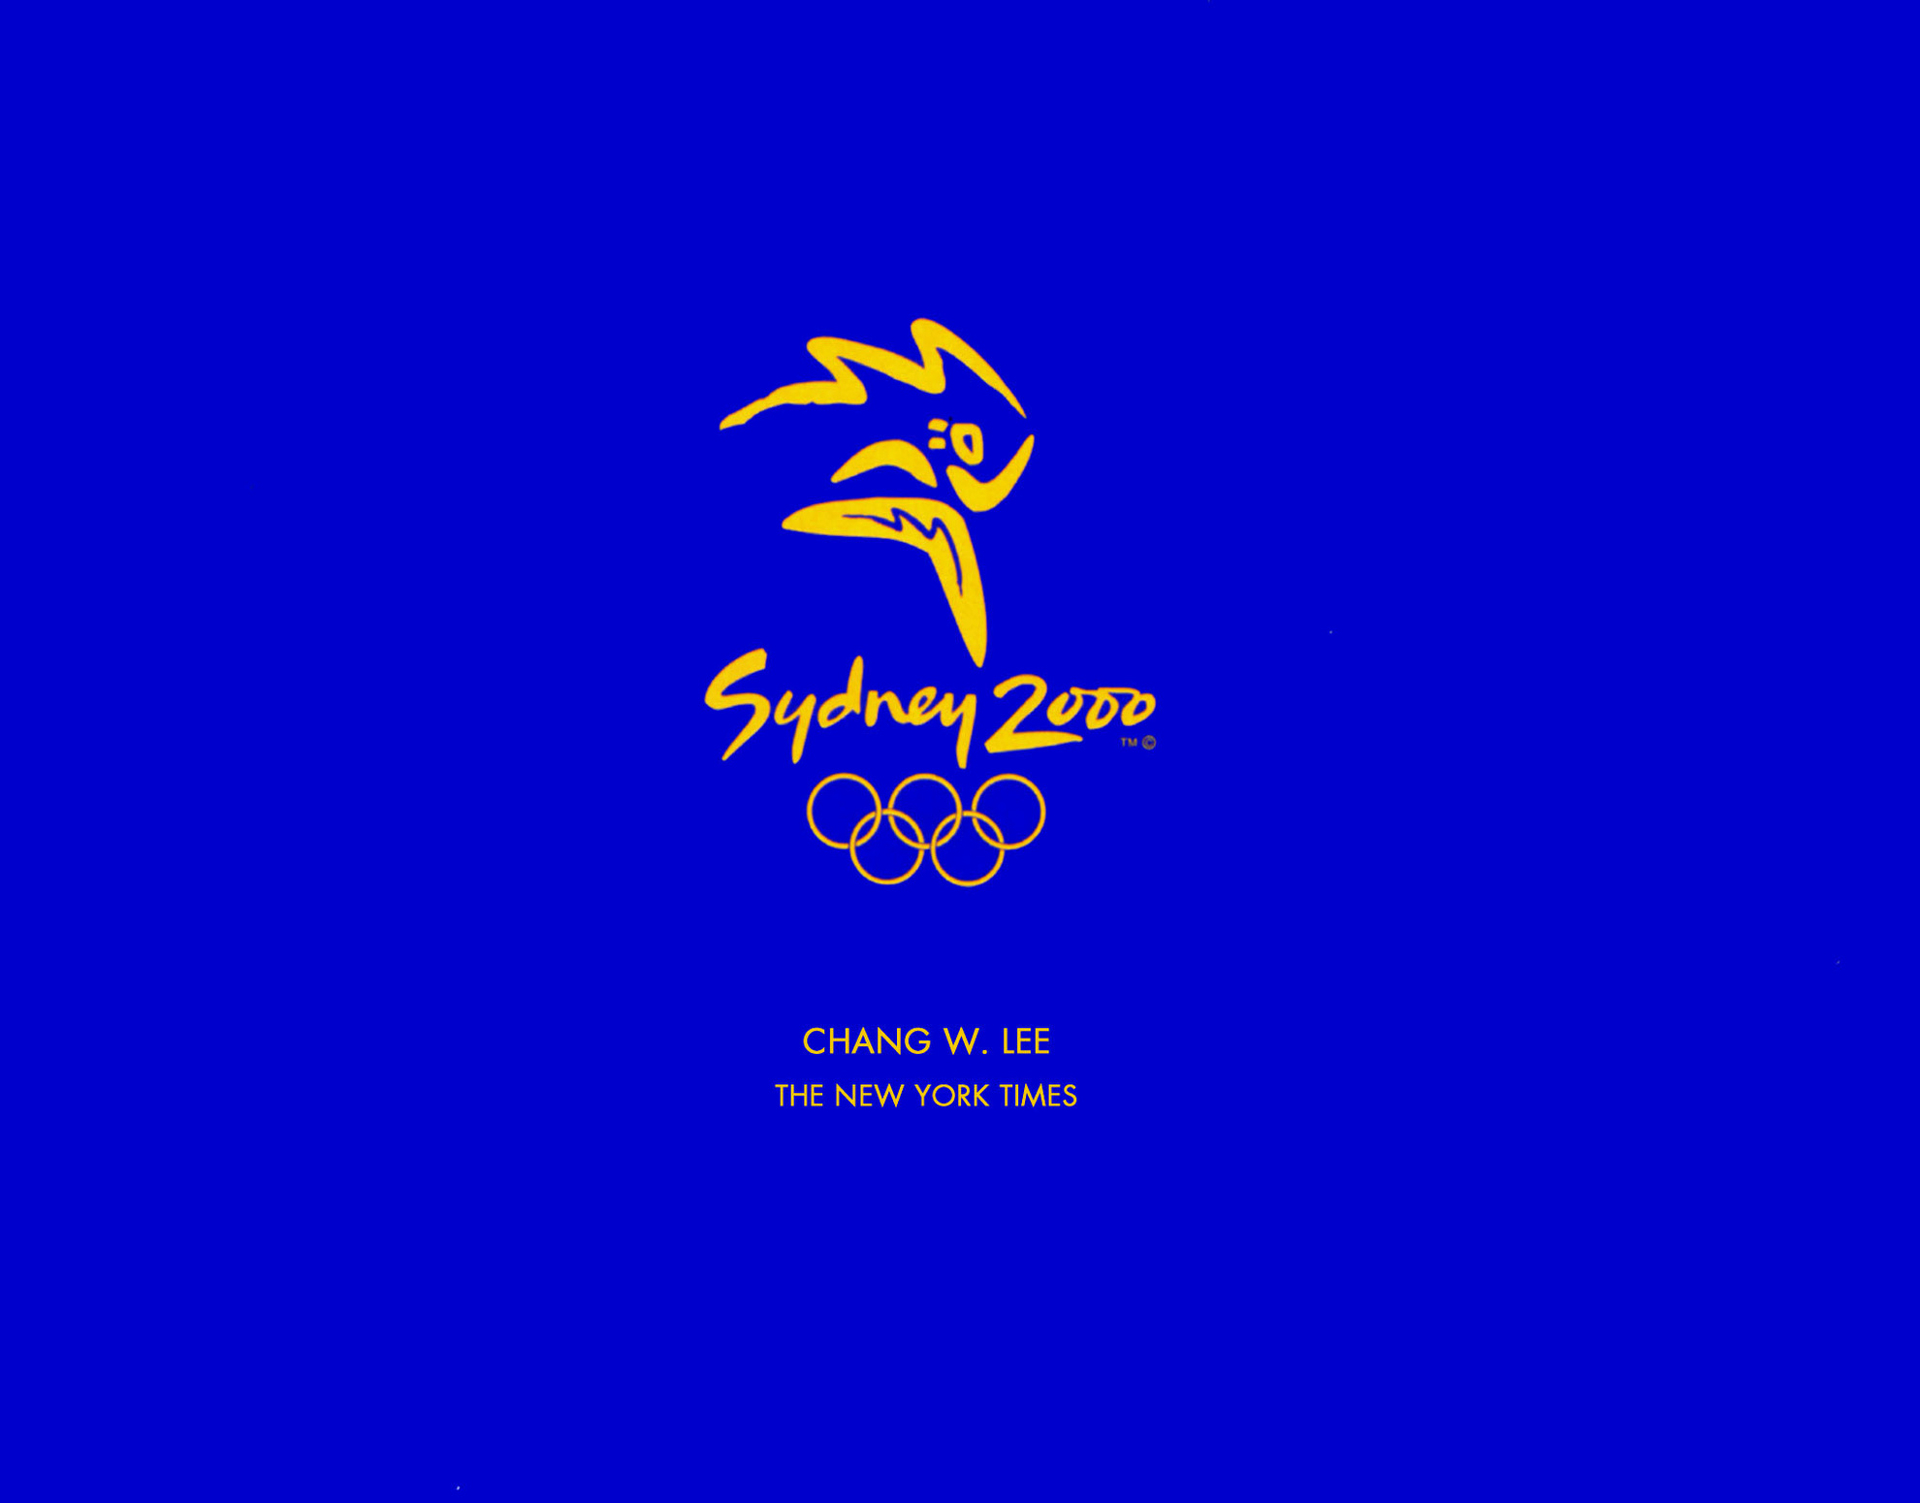 sport added to 2000 olympics in sydney-#27